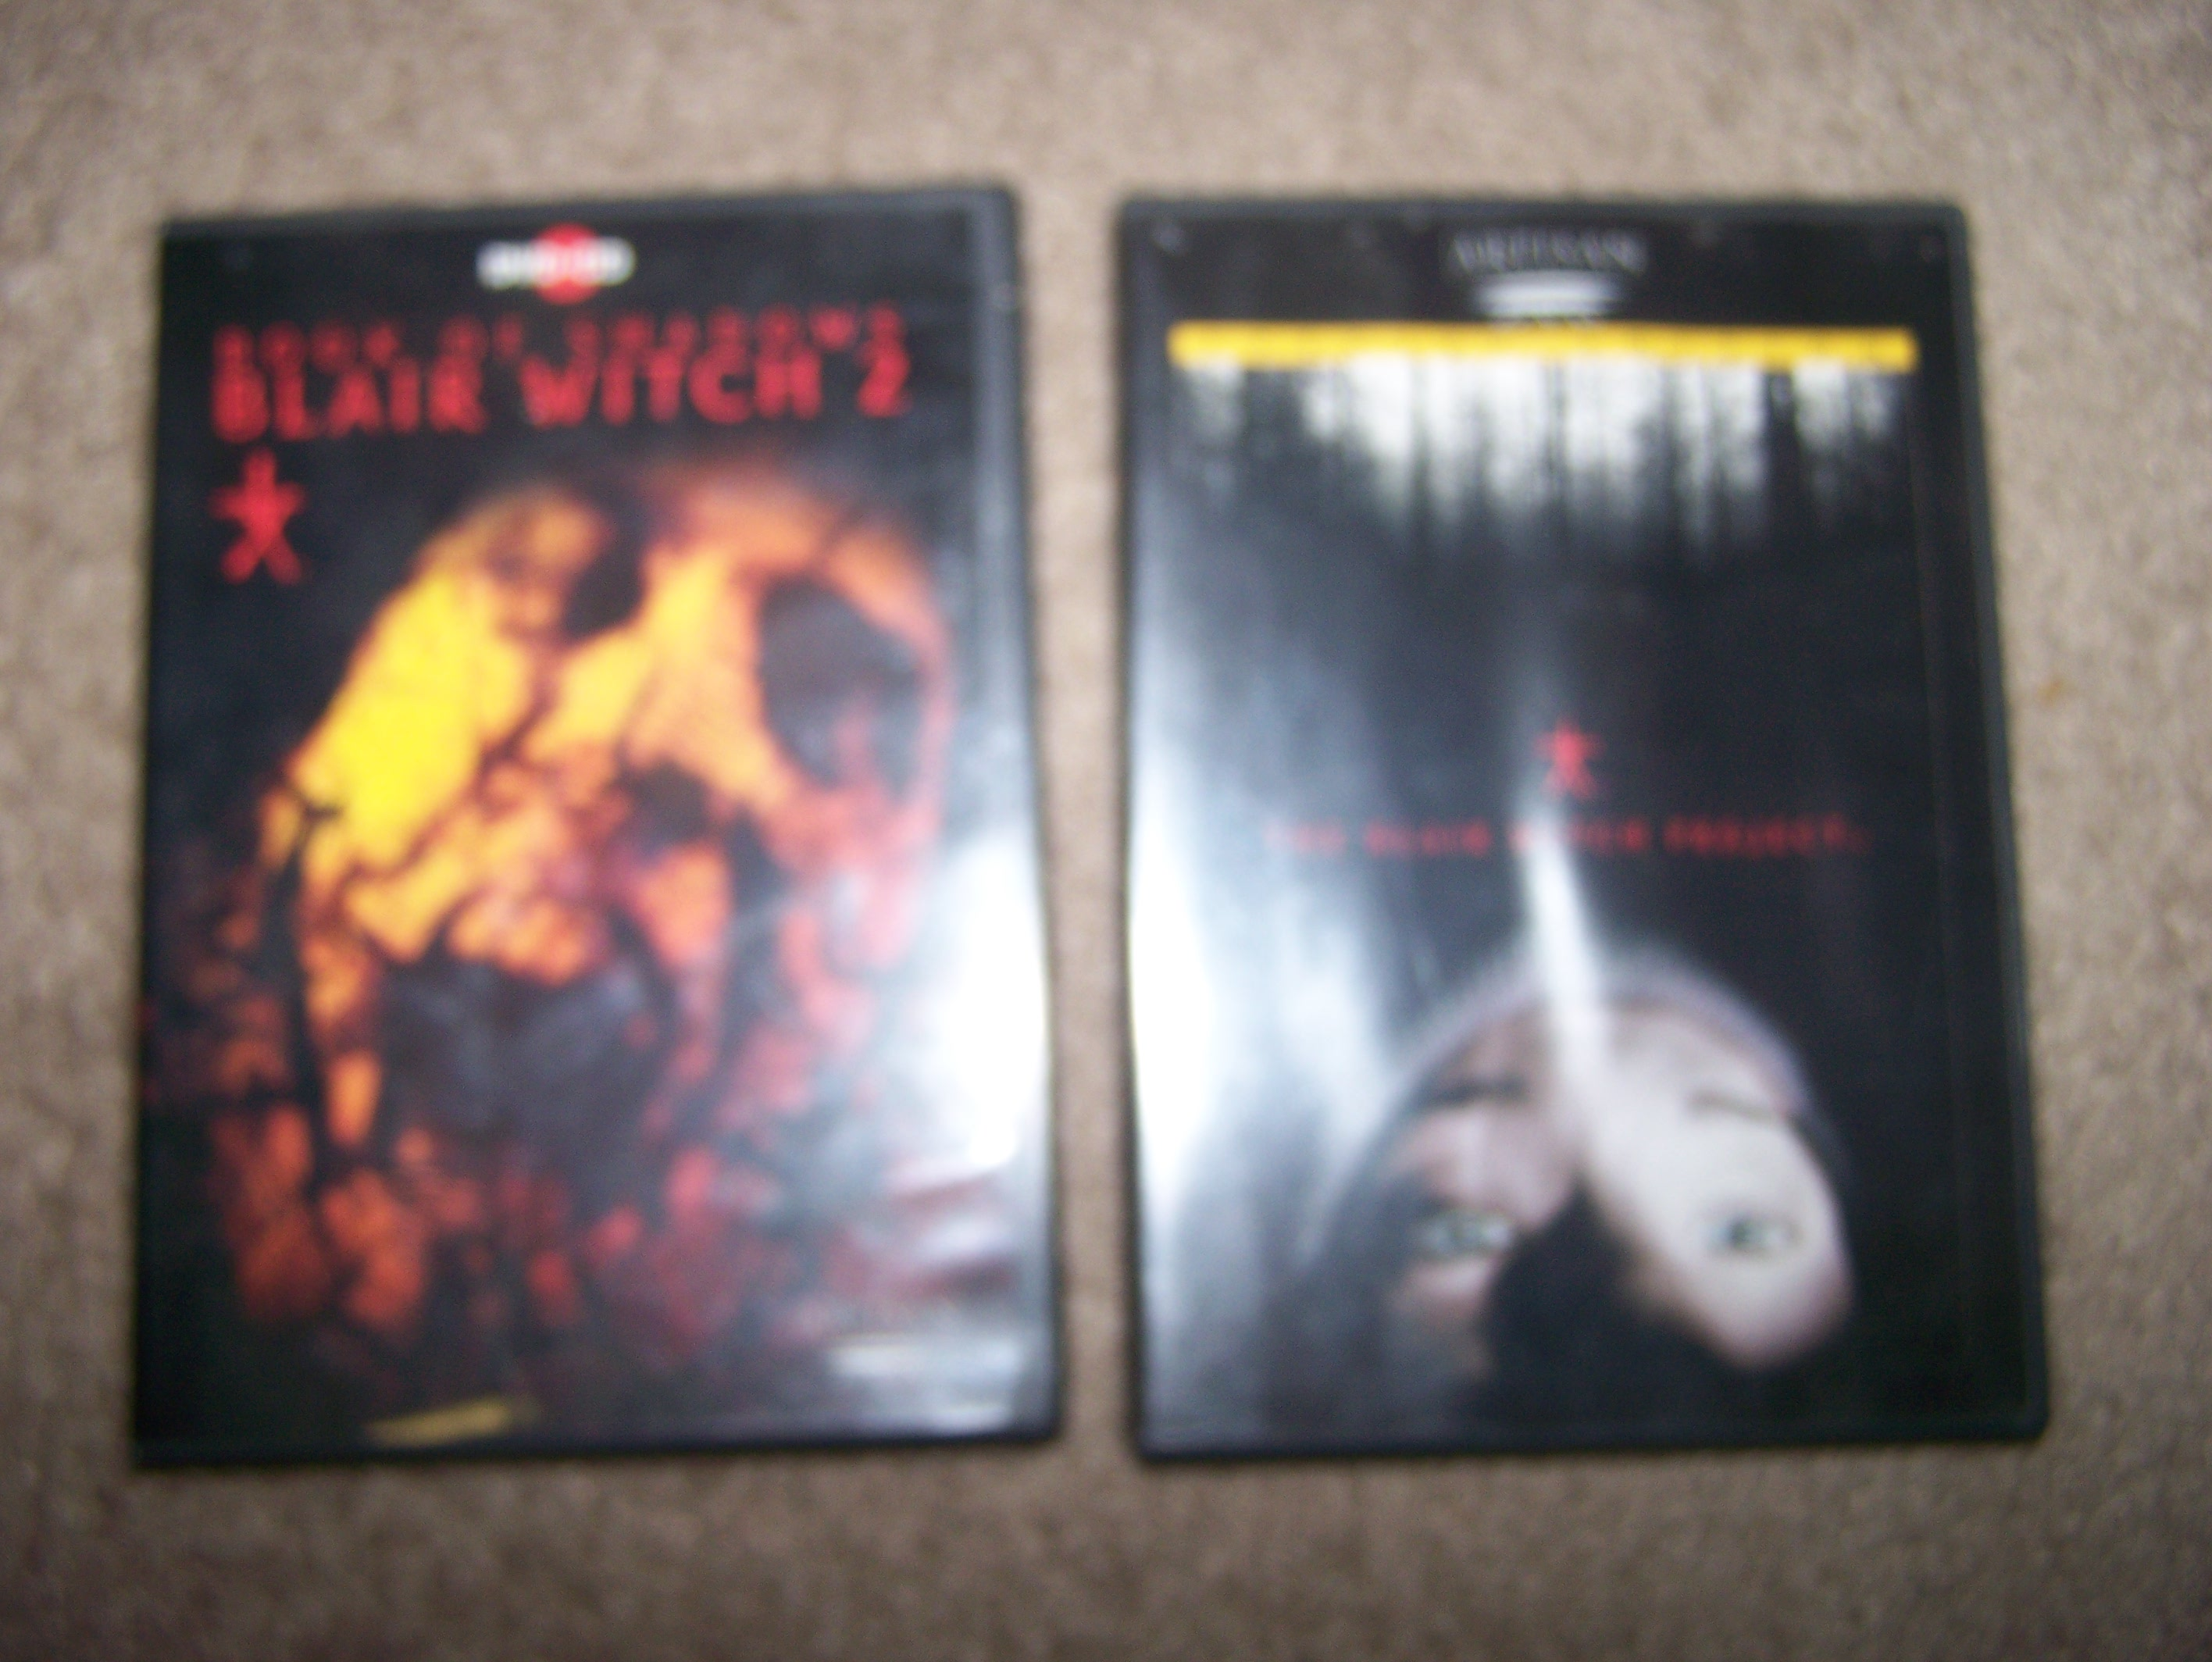 Blair Witch project both DVDs